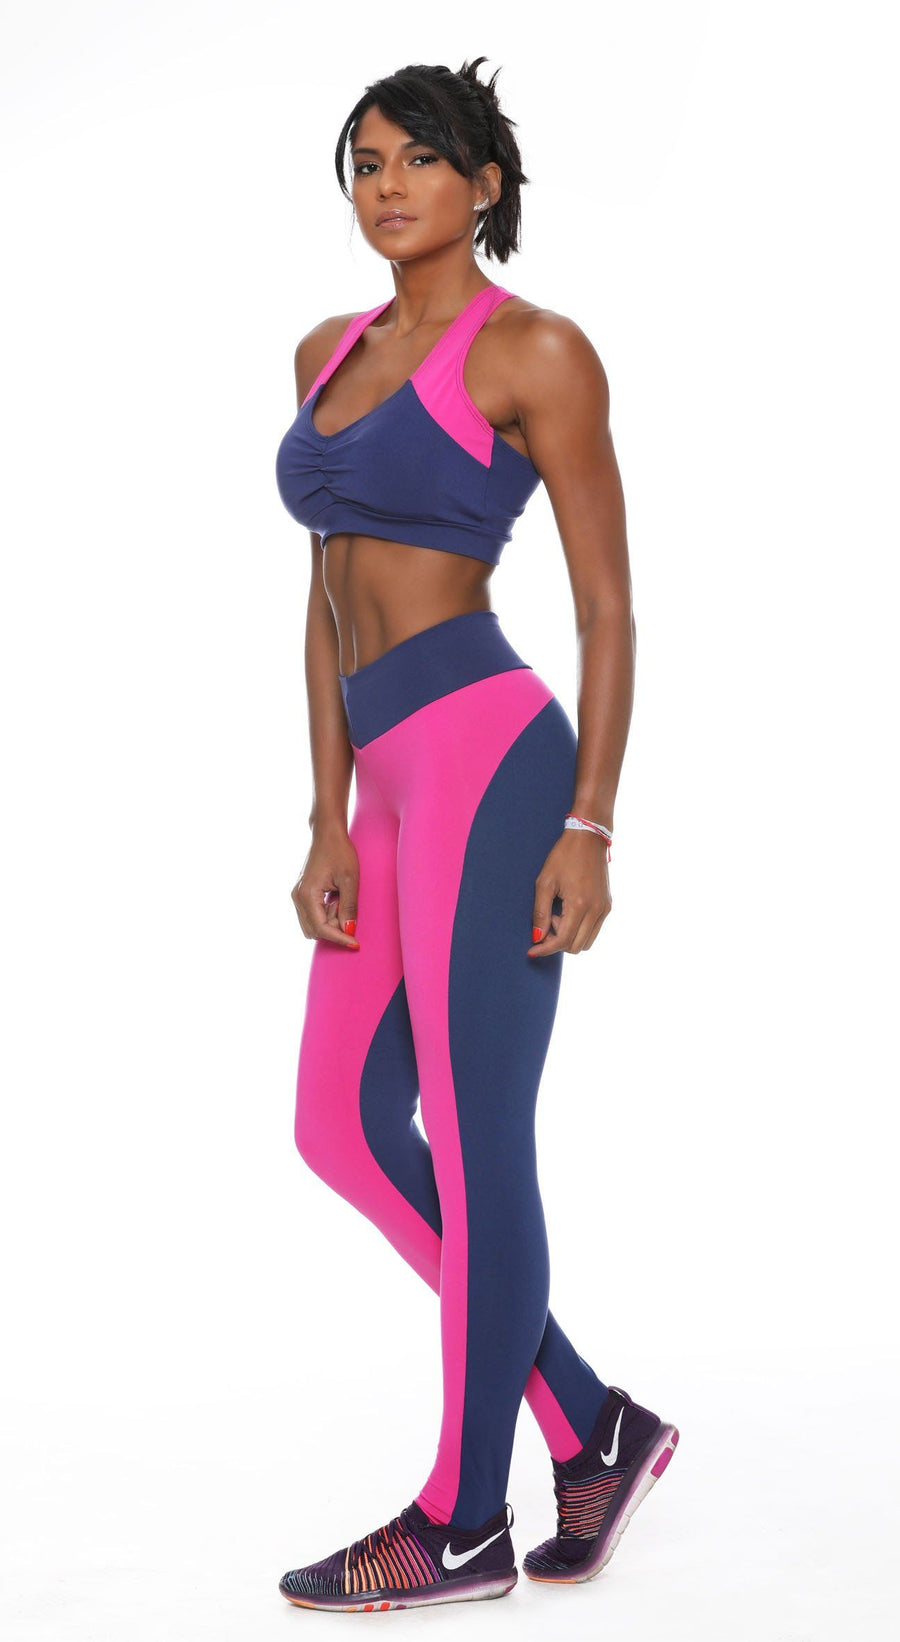 Brazilian Sports Bra - Top Fit One Navy & Hot Pink